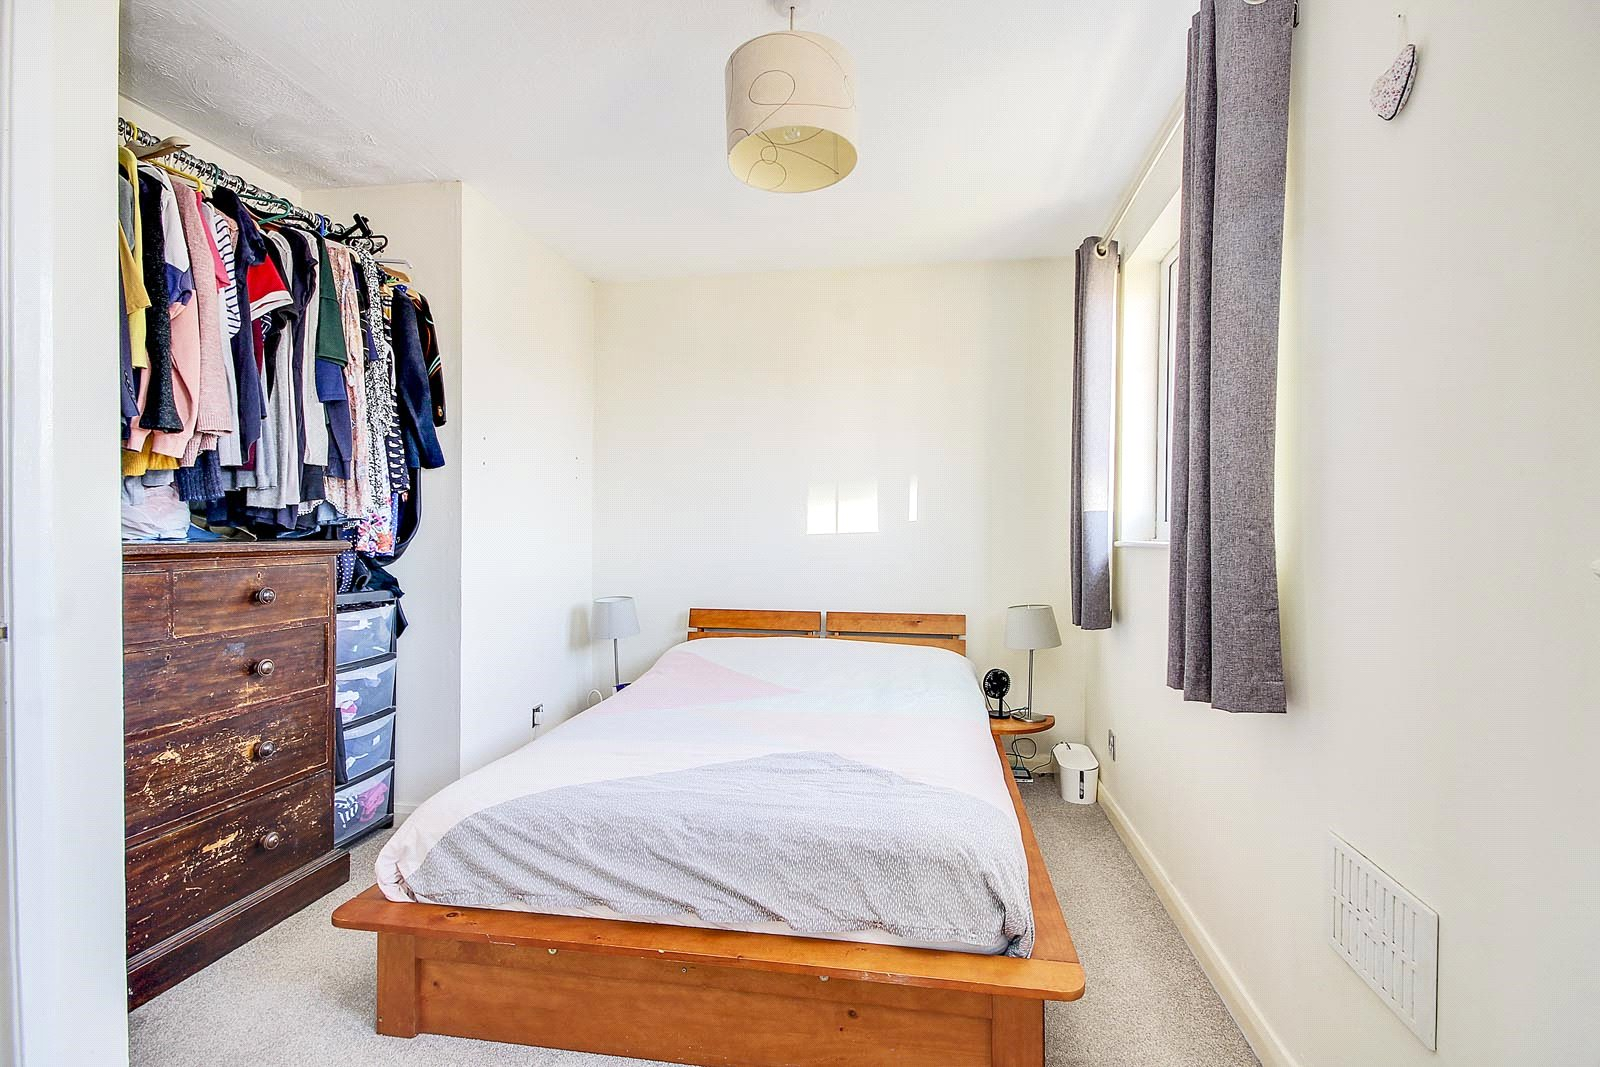 3 bed house for sale in Littlehampton, BN17 6RJ  - Property Image 8